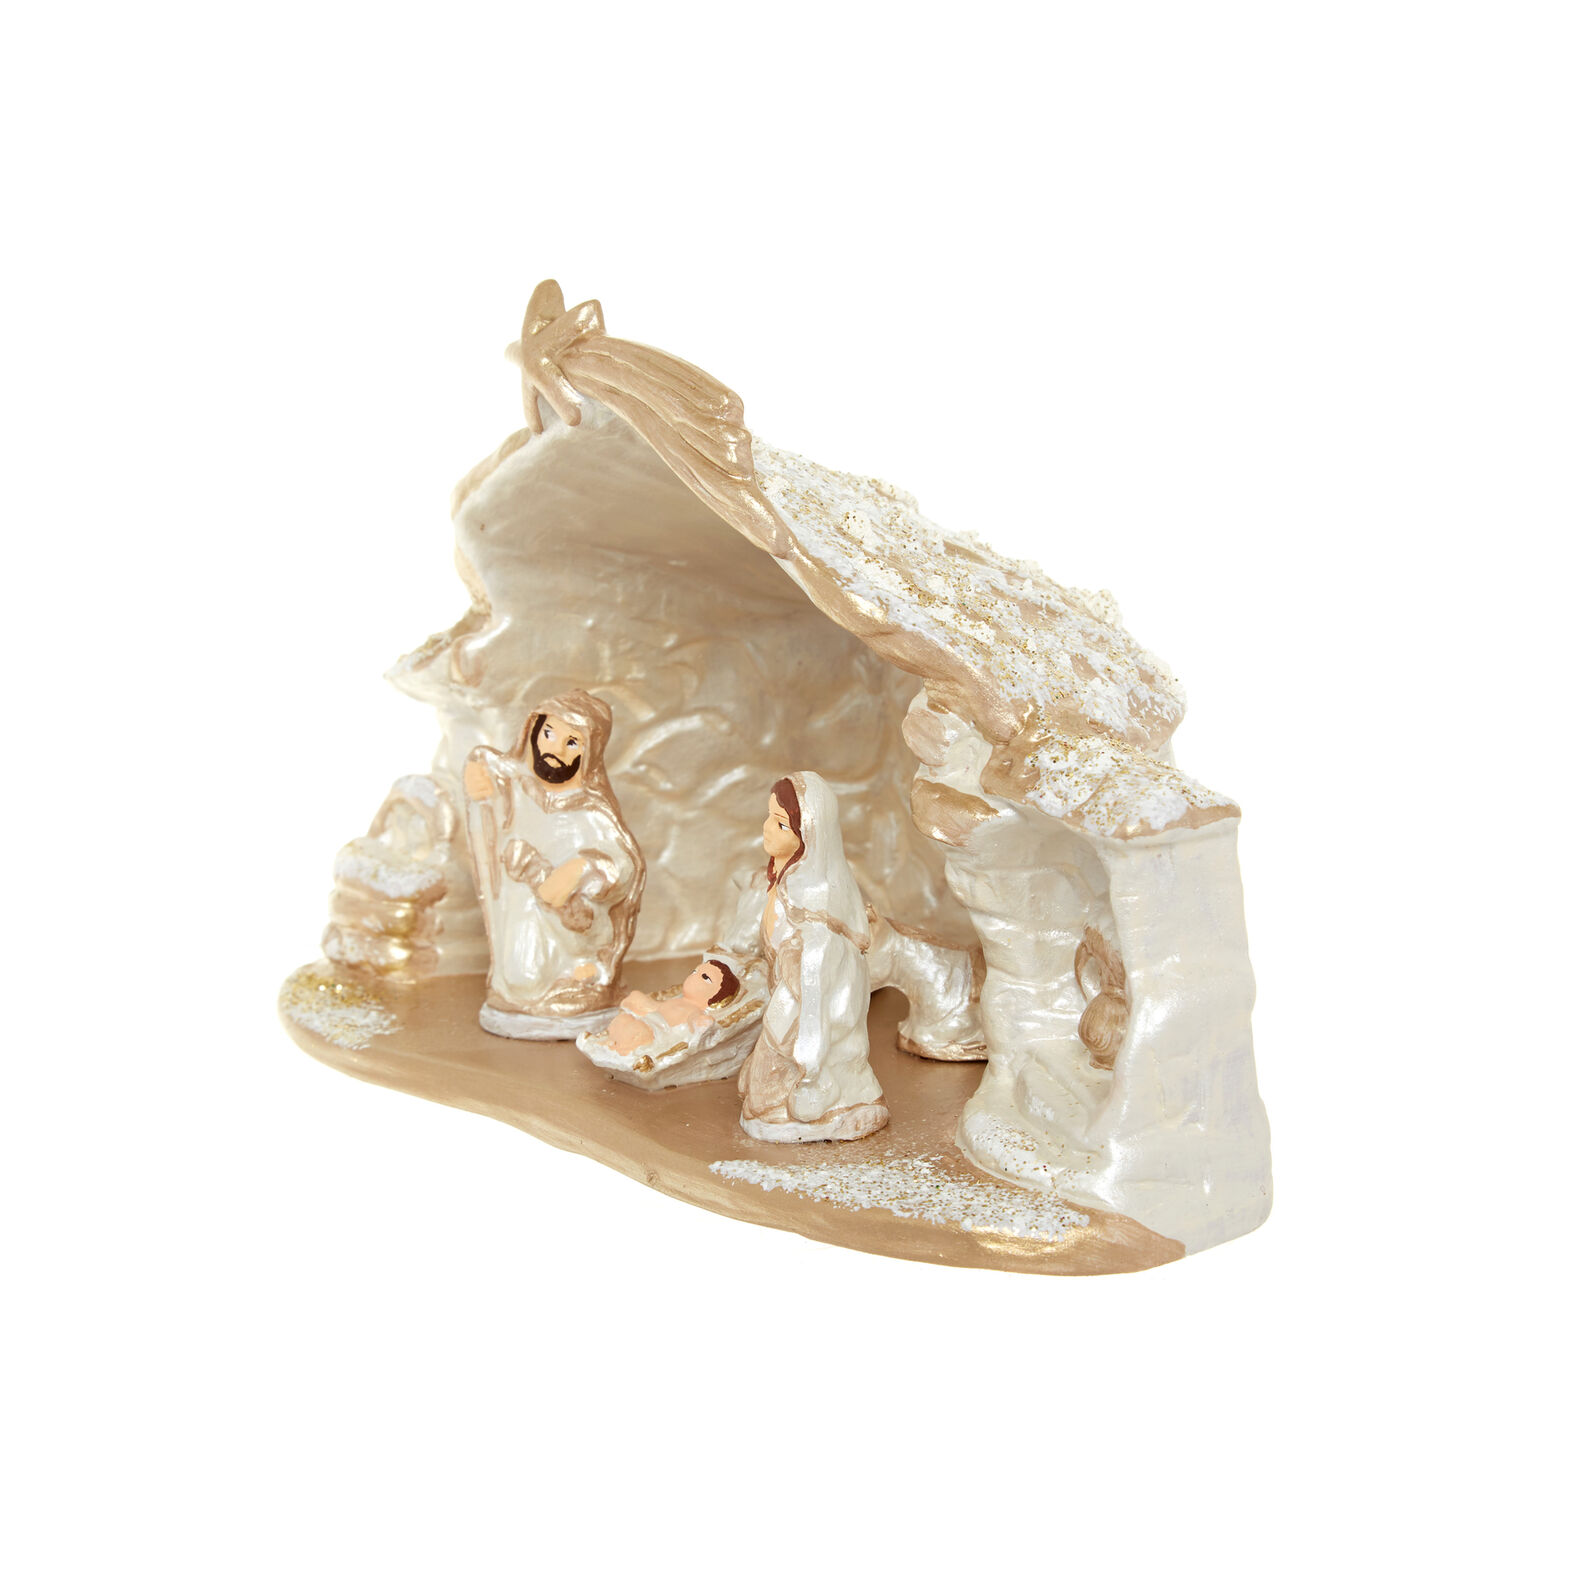 Terracotta nativity scene Made in Italy